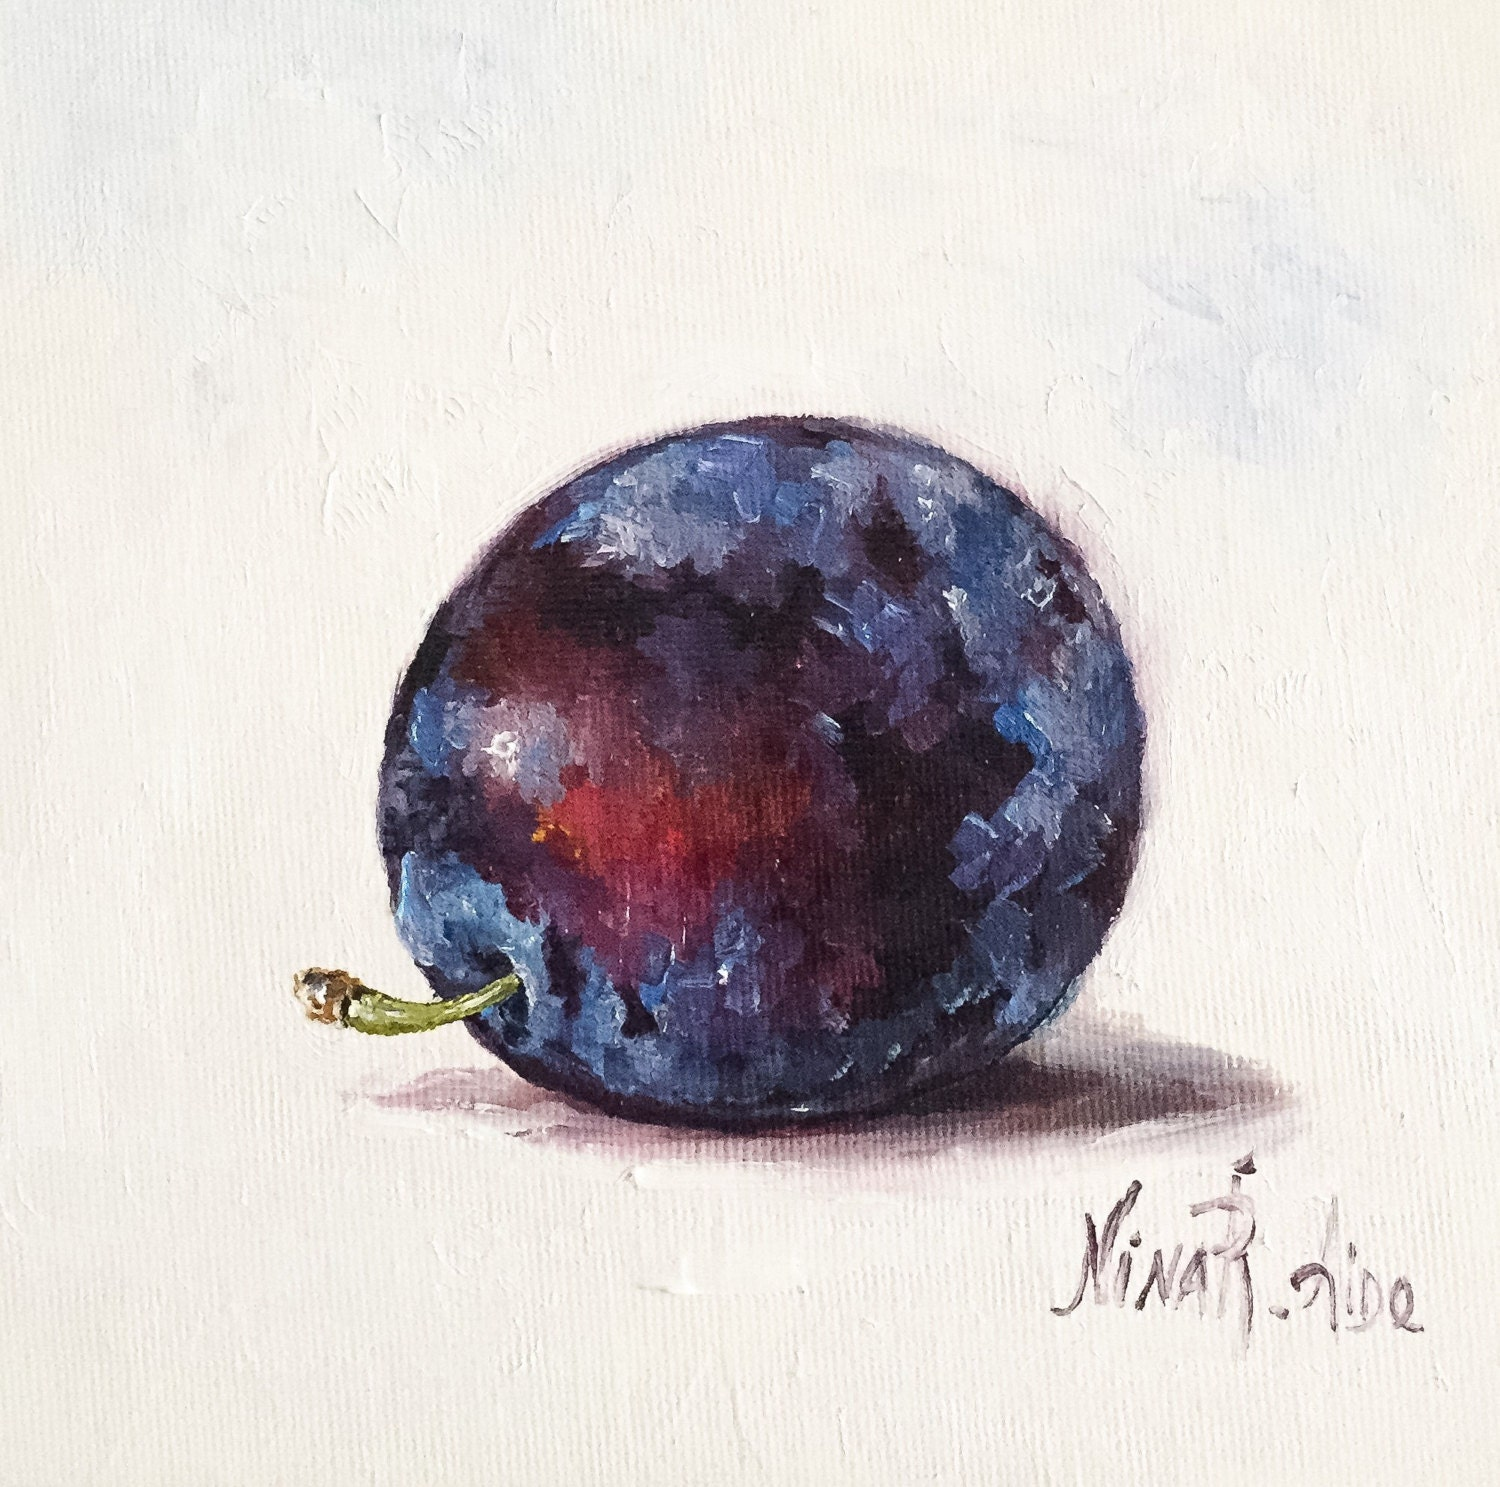 Plum Kitchen Paint: Blue Plum Still Life Original Oil Painting By Nina R.Aide